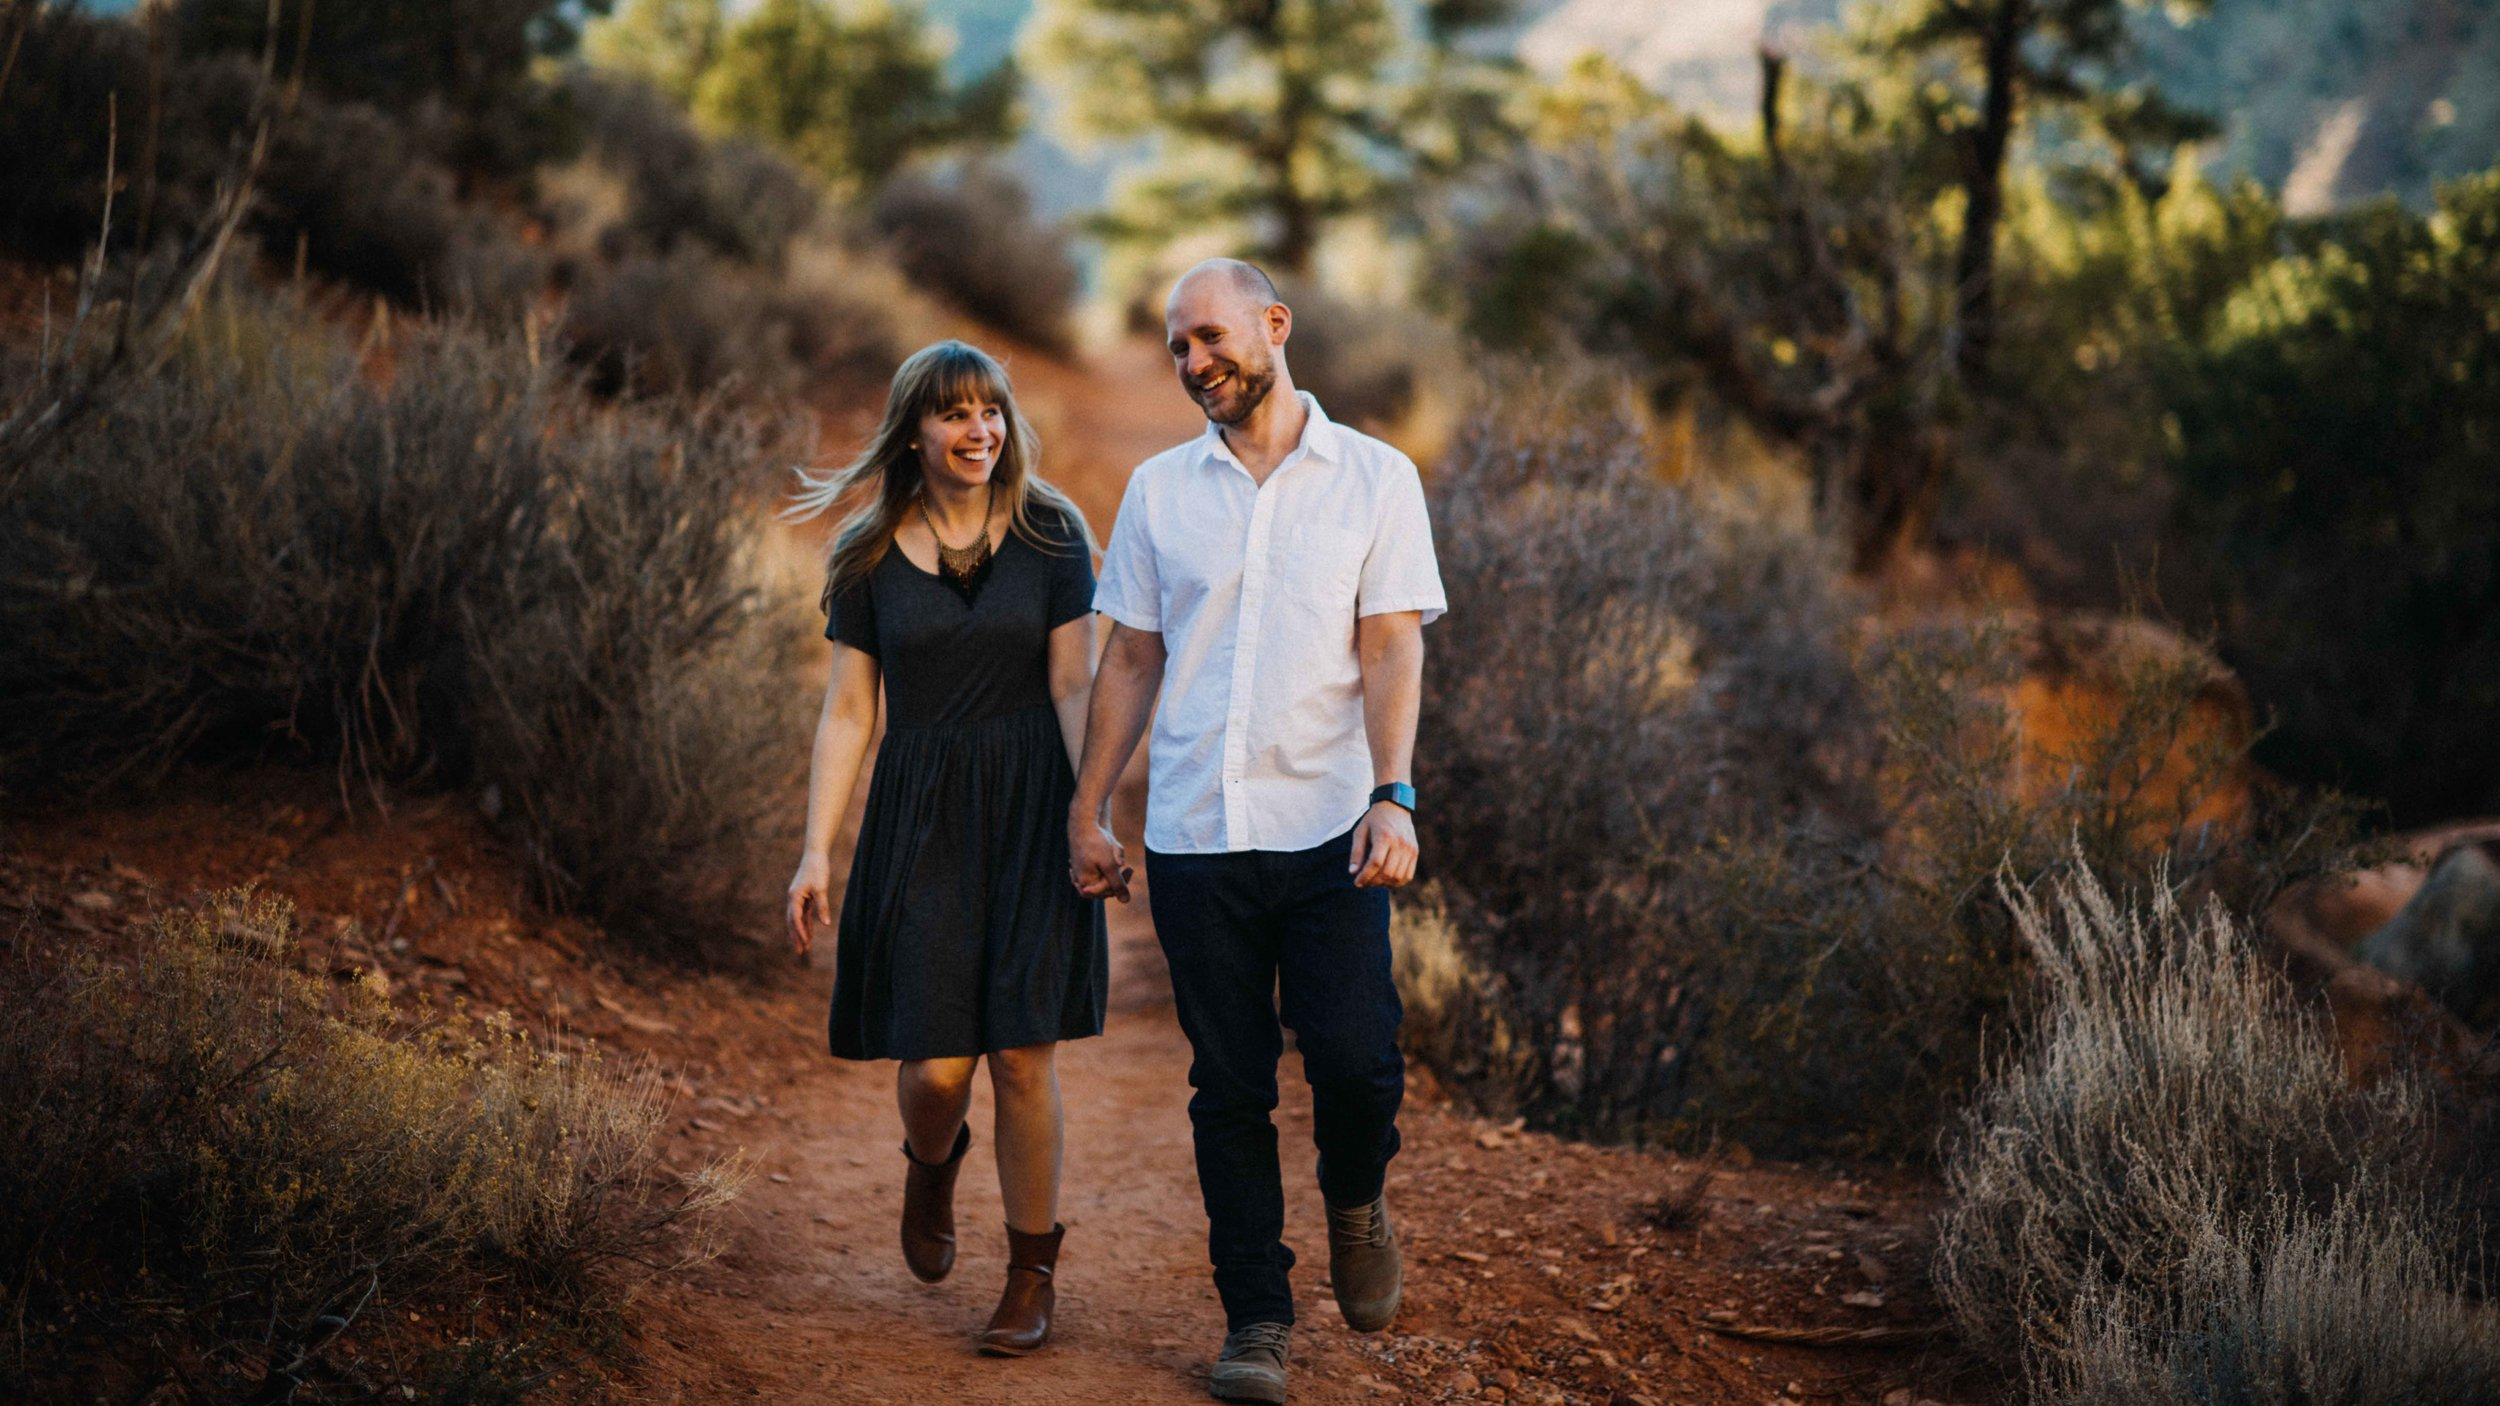 zion_national_park_utah_wedding_photography_engagement-2936.JPG